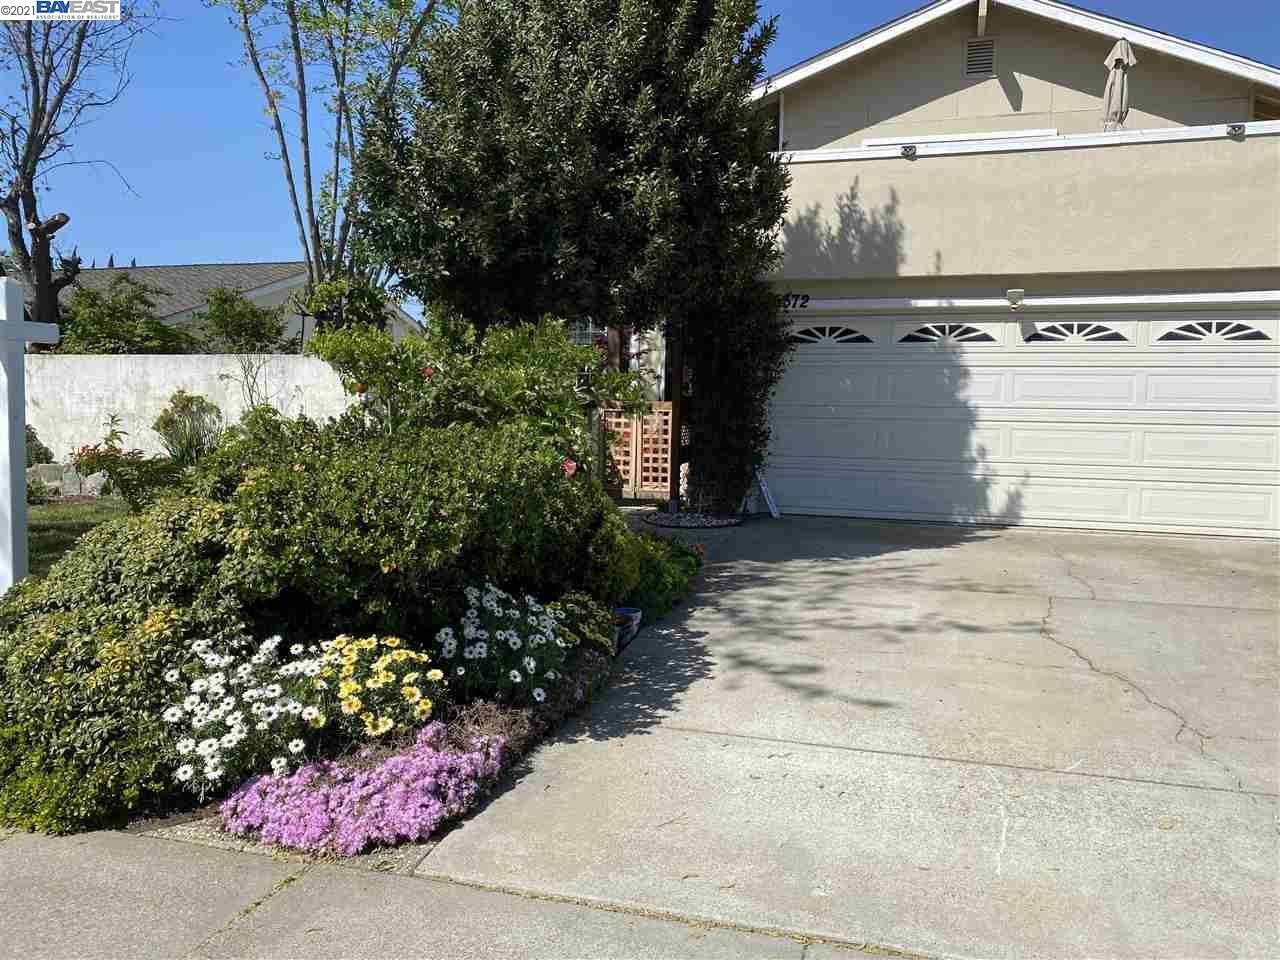 Photo of 5372 Charlotte Way, LIVERMORE, CA 94550 (MLS # 40943234)